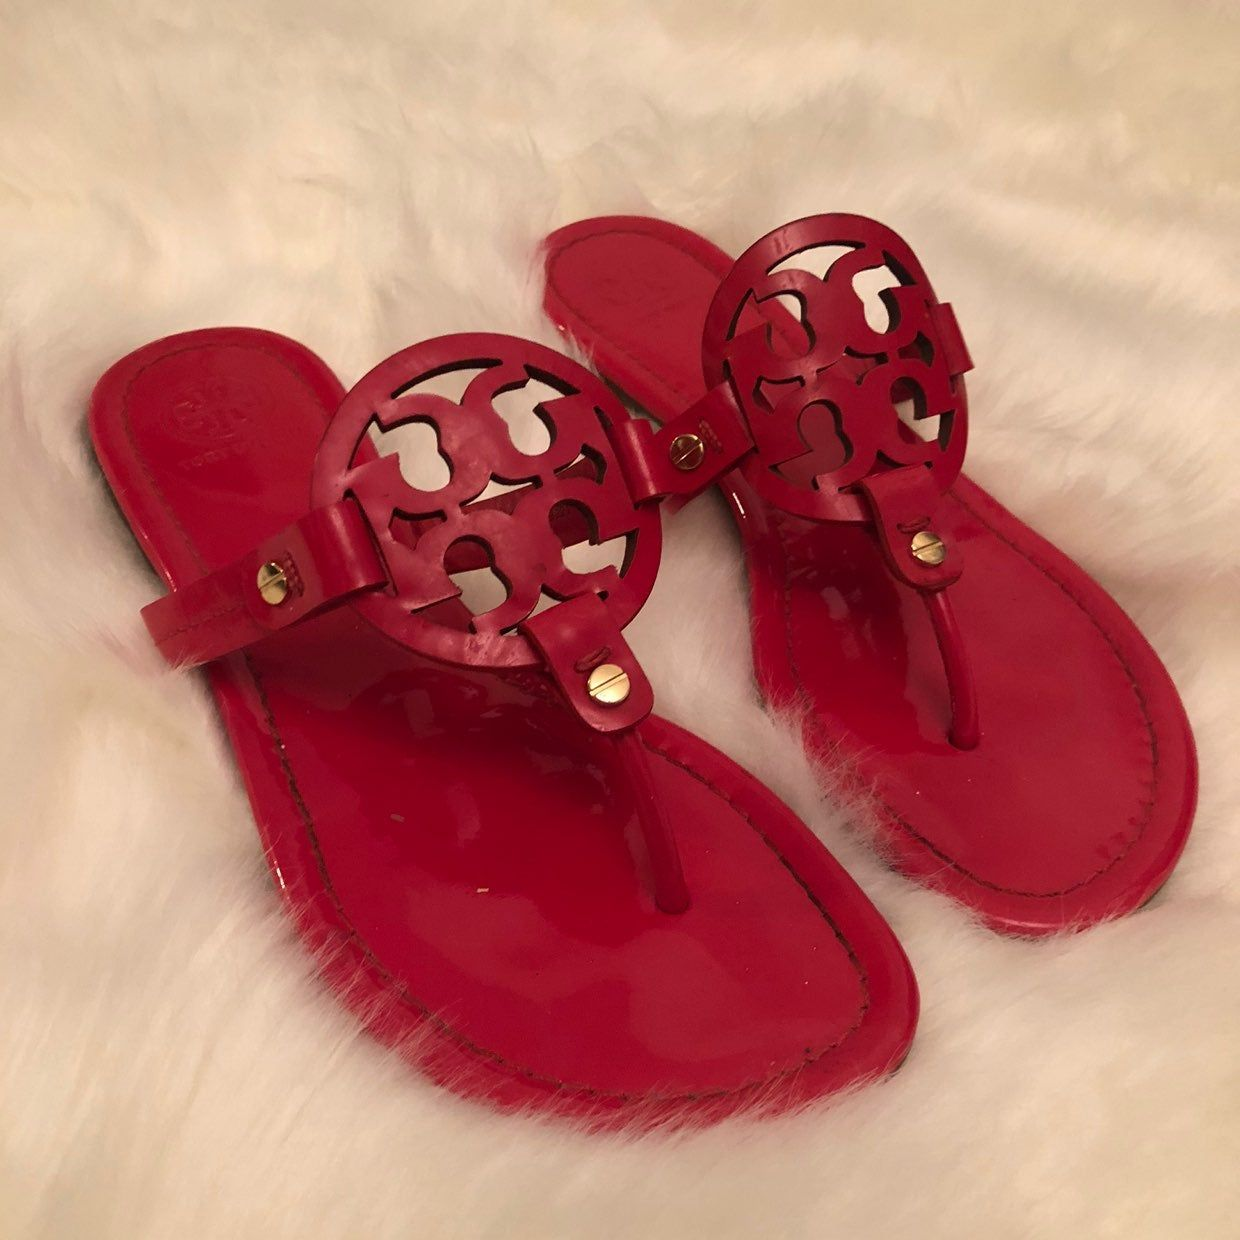 Pin on Tory Burch Sandals